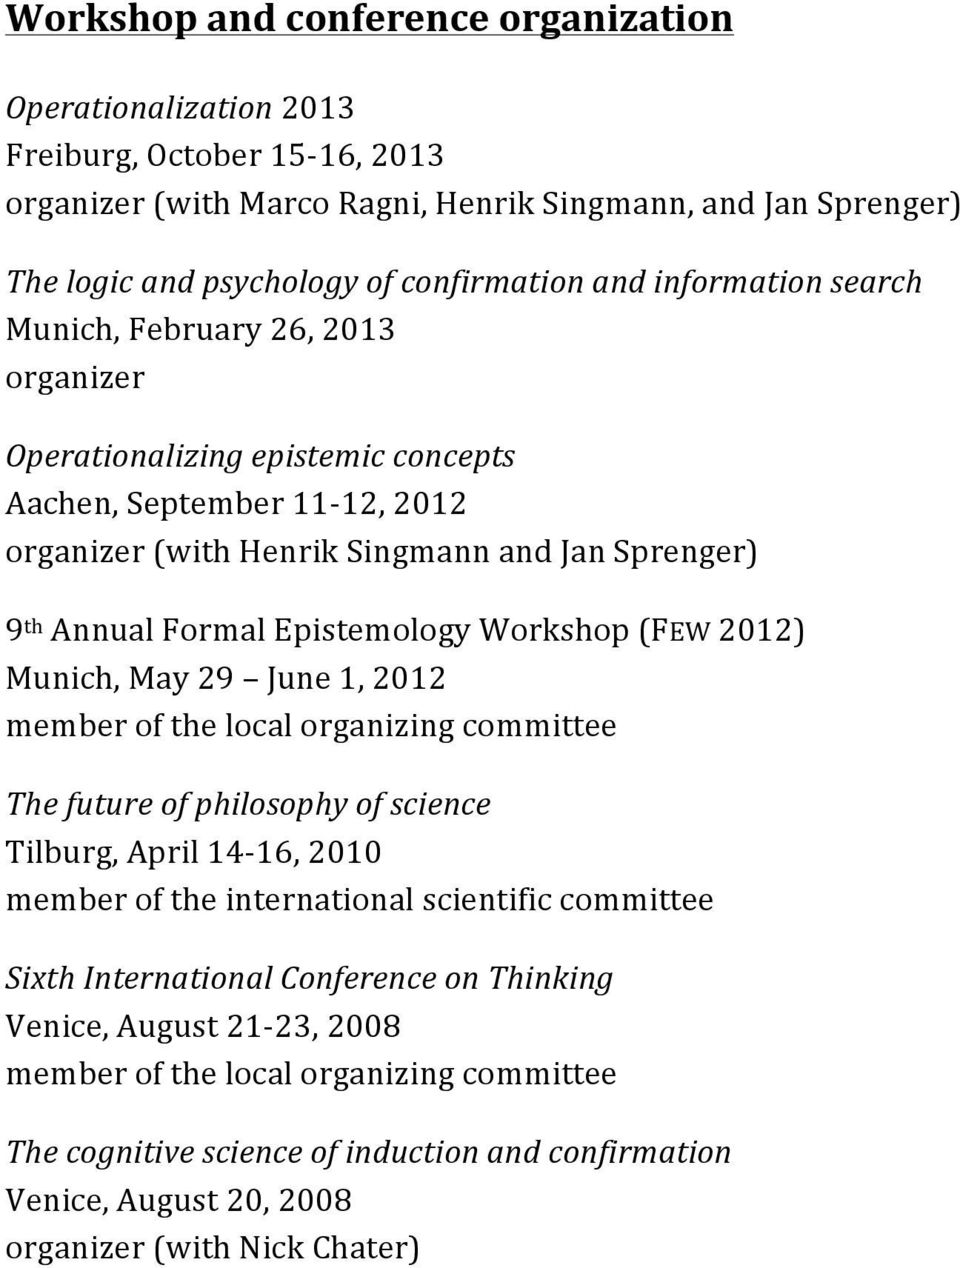 Epistemology Workshop (FEW 2012) Munich, May 29 June 1, 2012 member of the local organizing committee The future of philosophy of science Tilburg, April 14-16, 2010 member of the international